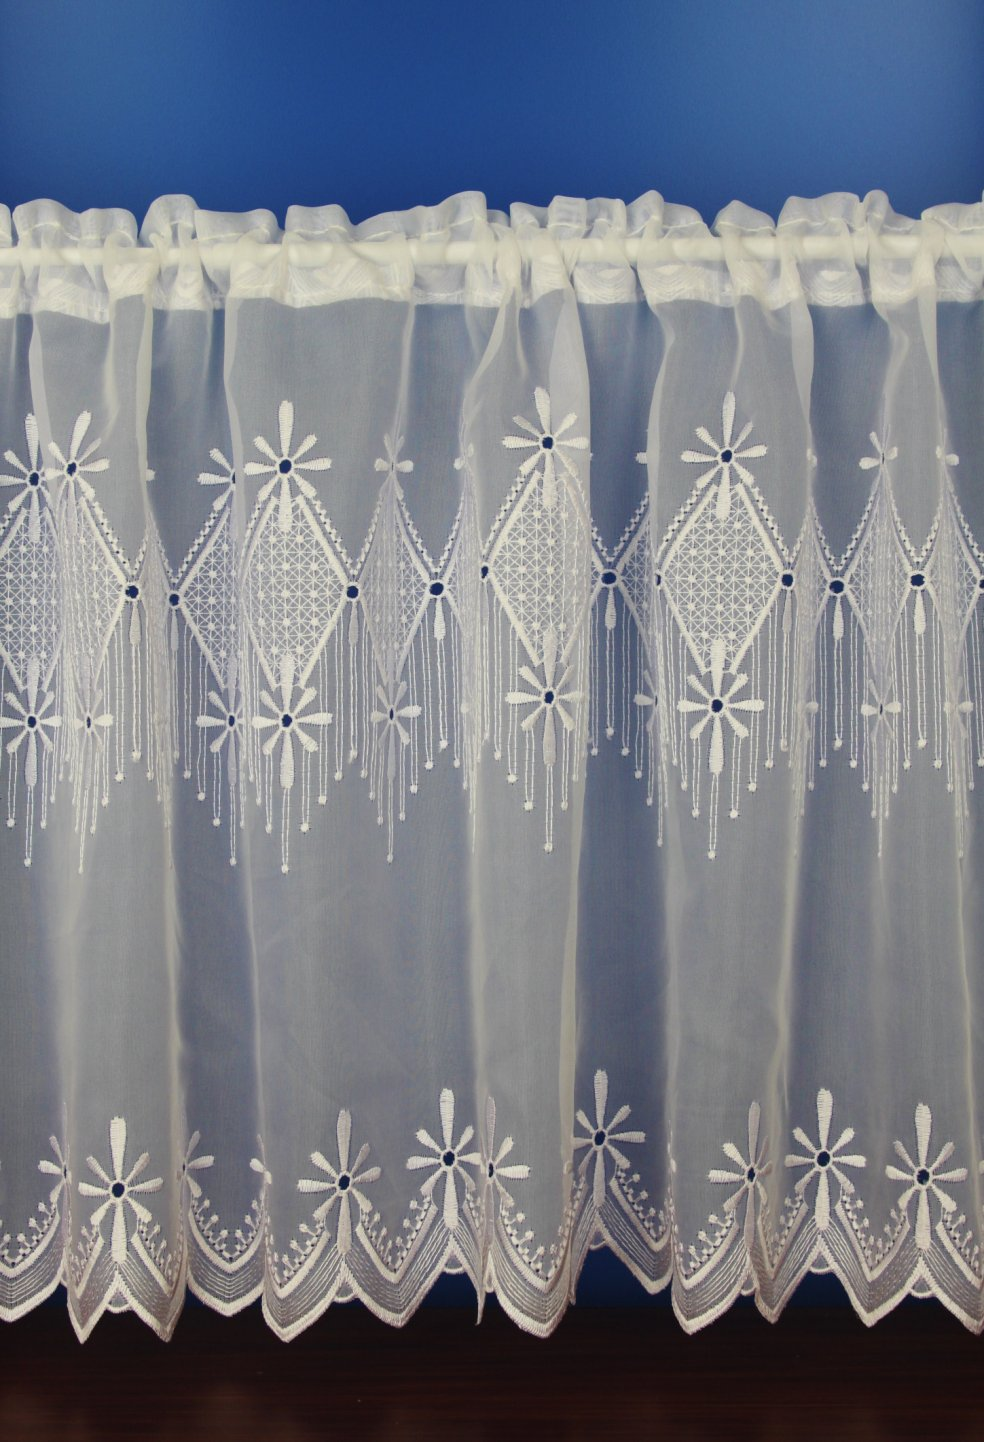 Embroidered Curtains | Embroidered Window Sheers | Urban Outfitters Curtains